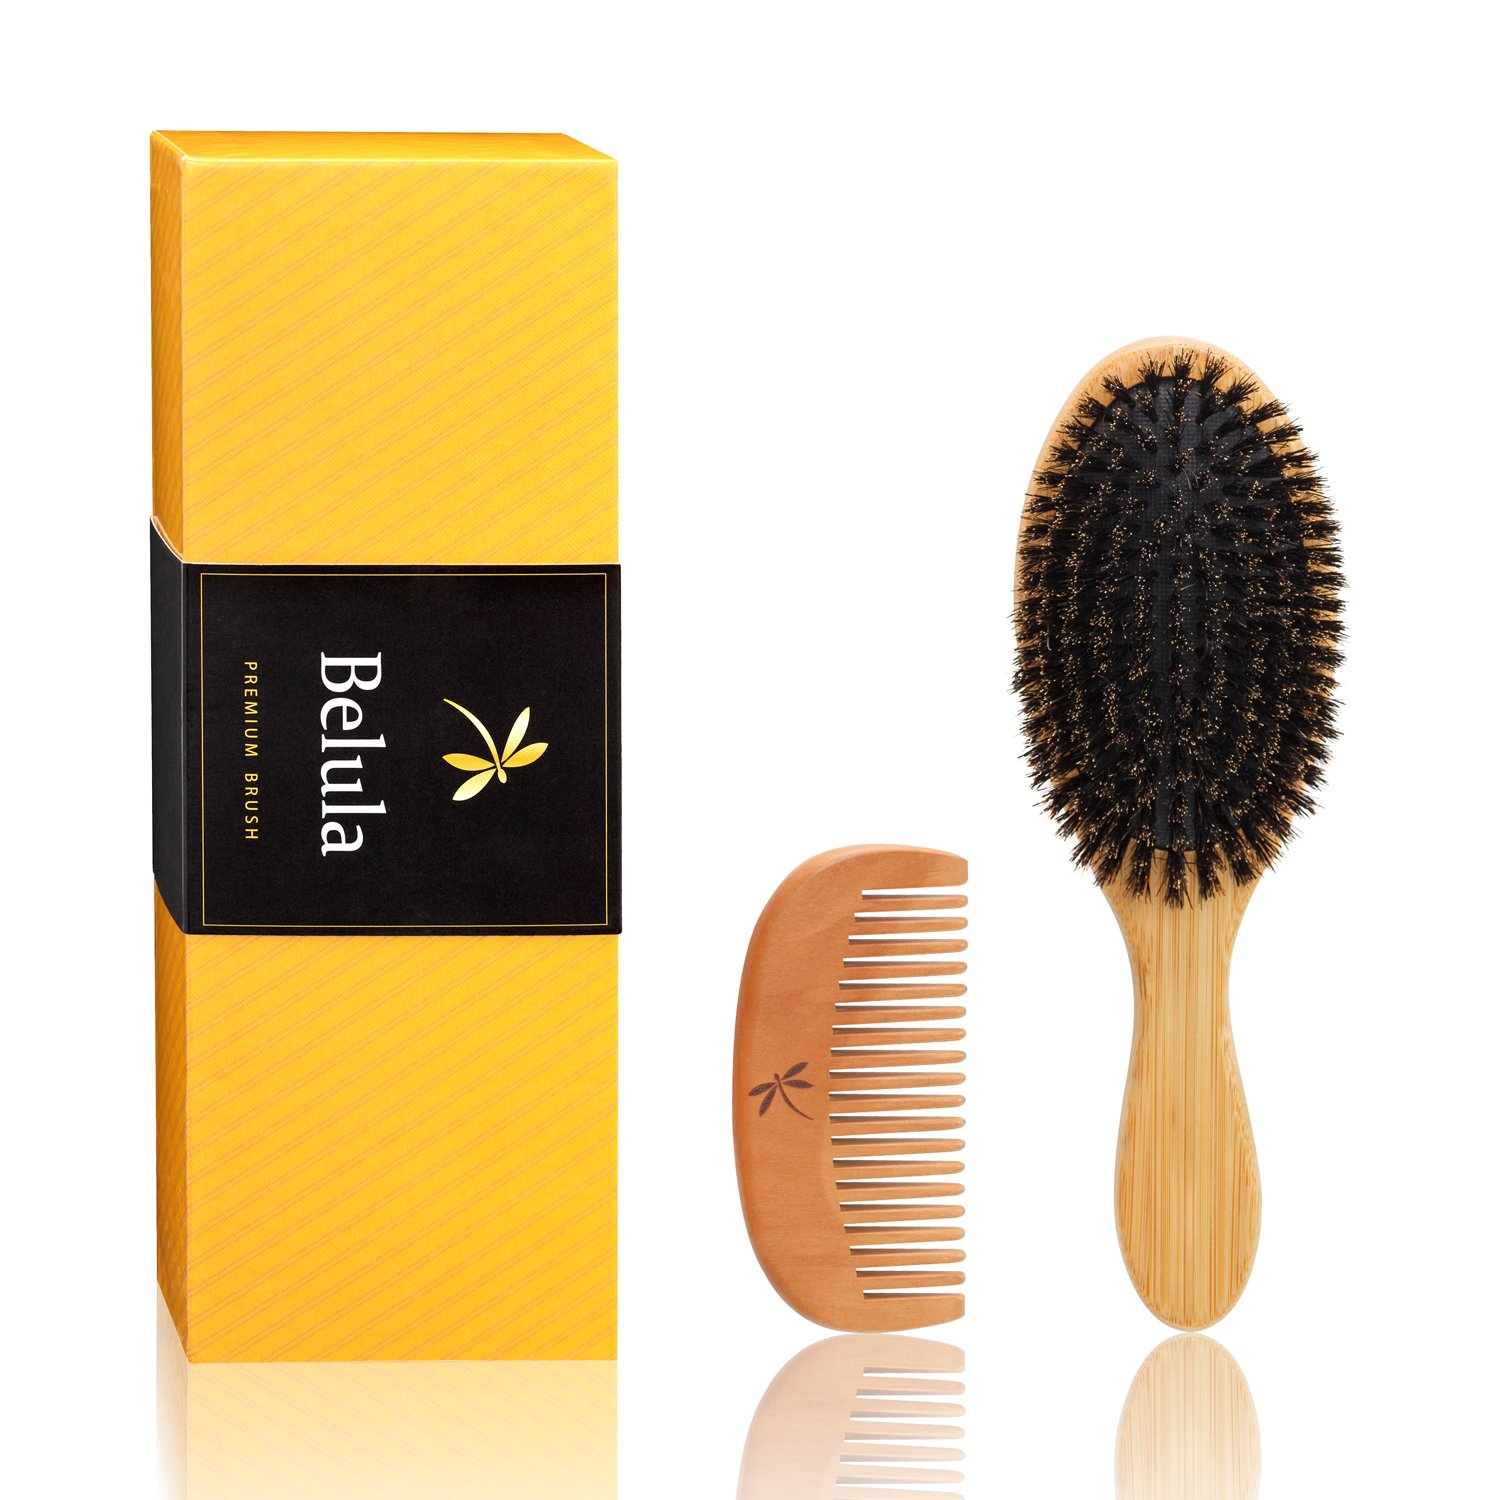 Natural Boar Bristle Hair Brush Set for Women, Men and Kids With Thin, Normal And Fine Hair. Restore Shine And Texture To Your Hair. Wooden Comb, Travel Bag and Spa Headband Included! Belula Care